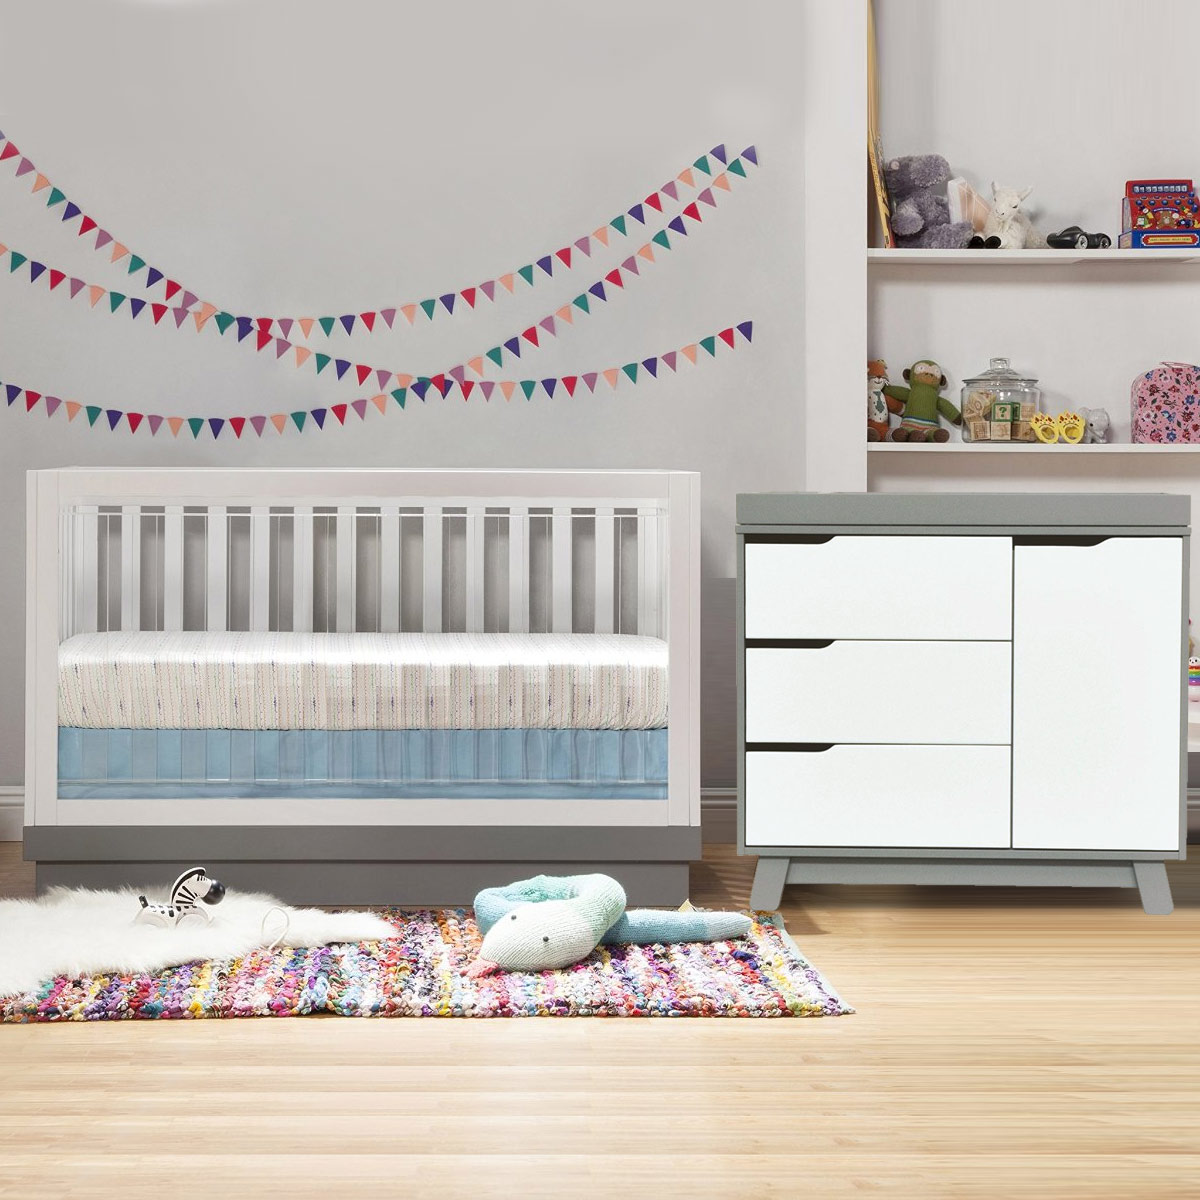 Babyletto 2 Piece Nursery Set   Acrylic Harlow 3 In 1 Convertible Crib And  Hudson Changer Dresser In Two Tone Grey And White FREE SHIPPING